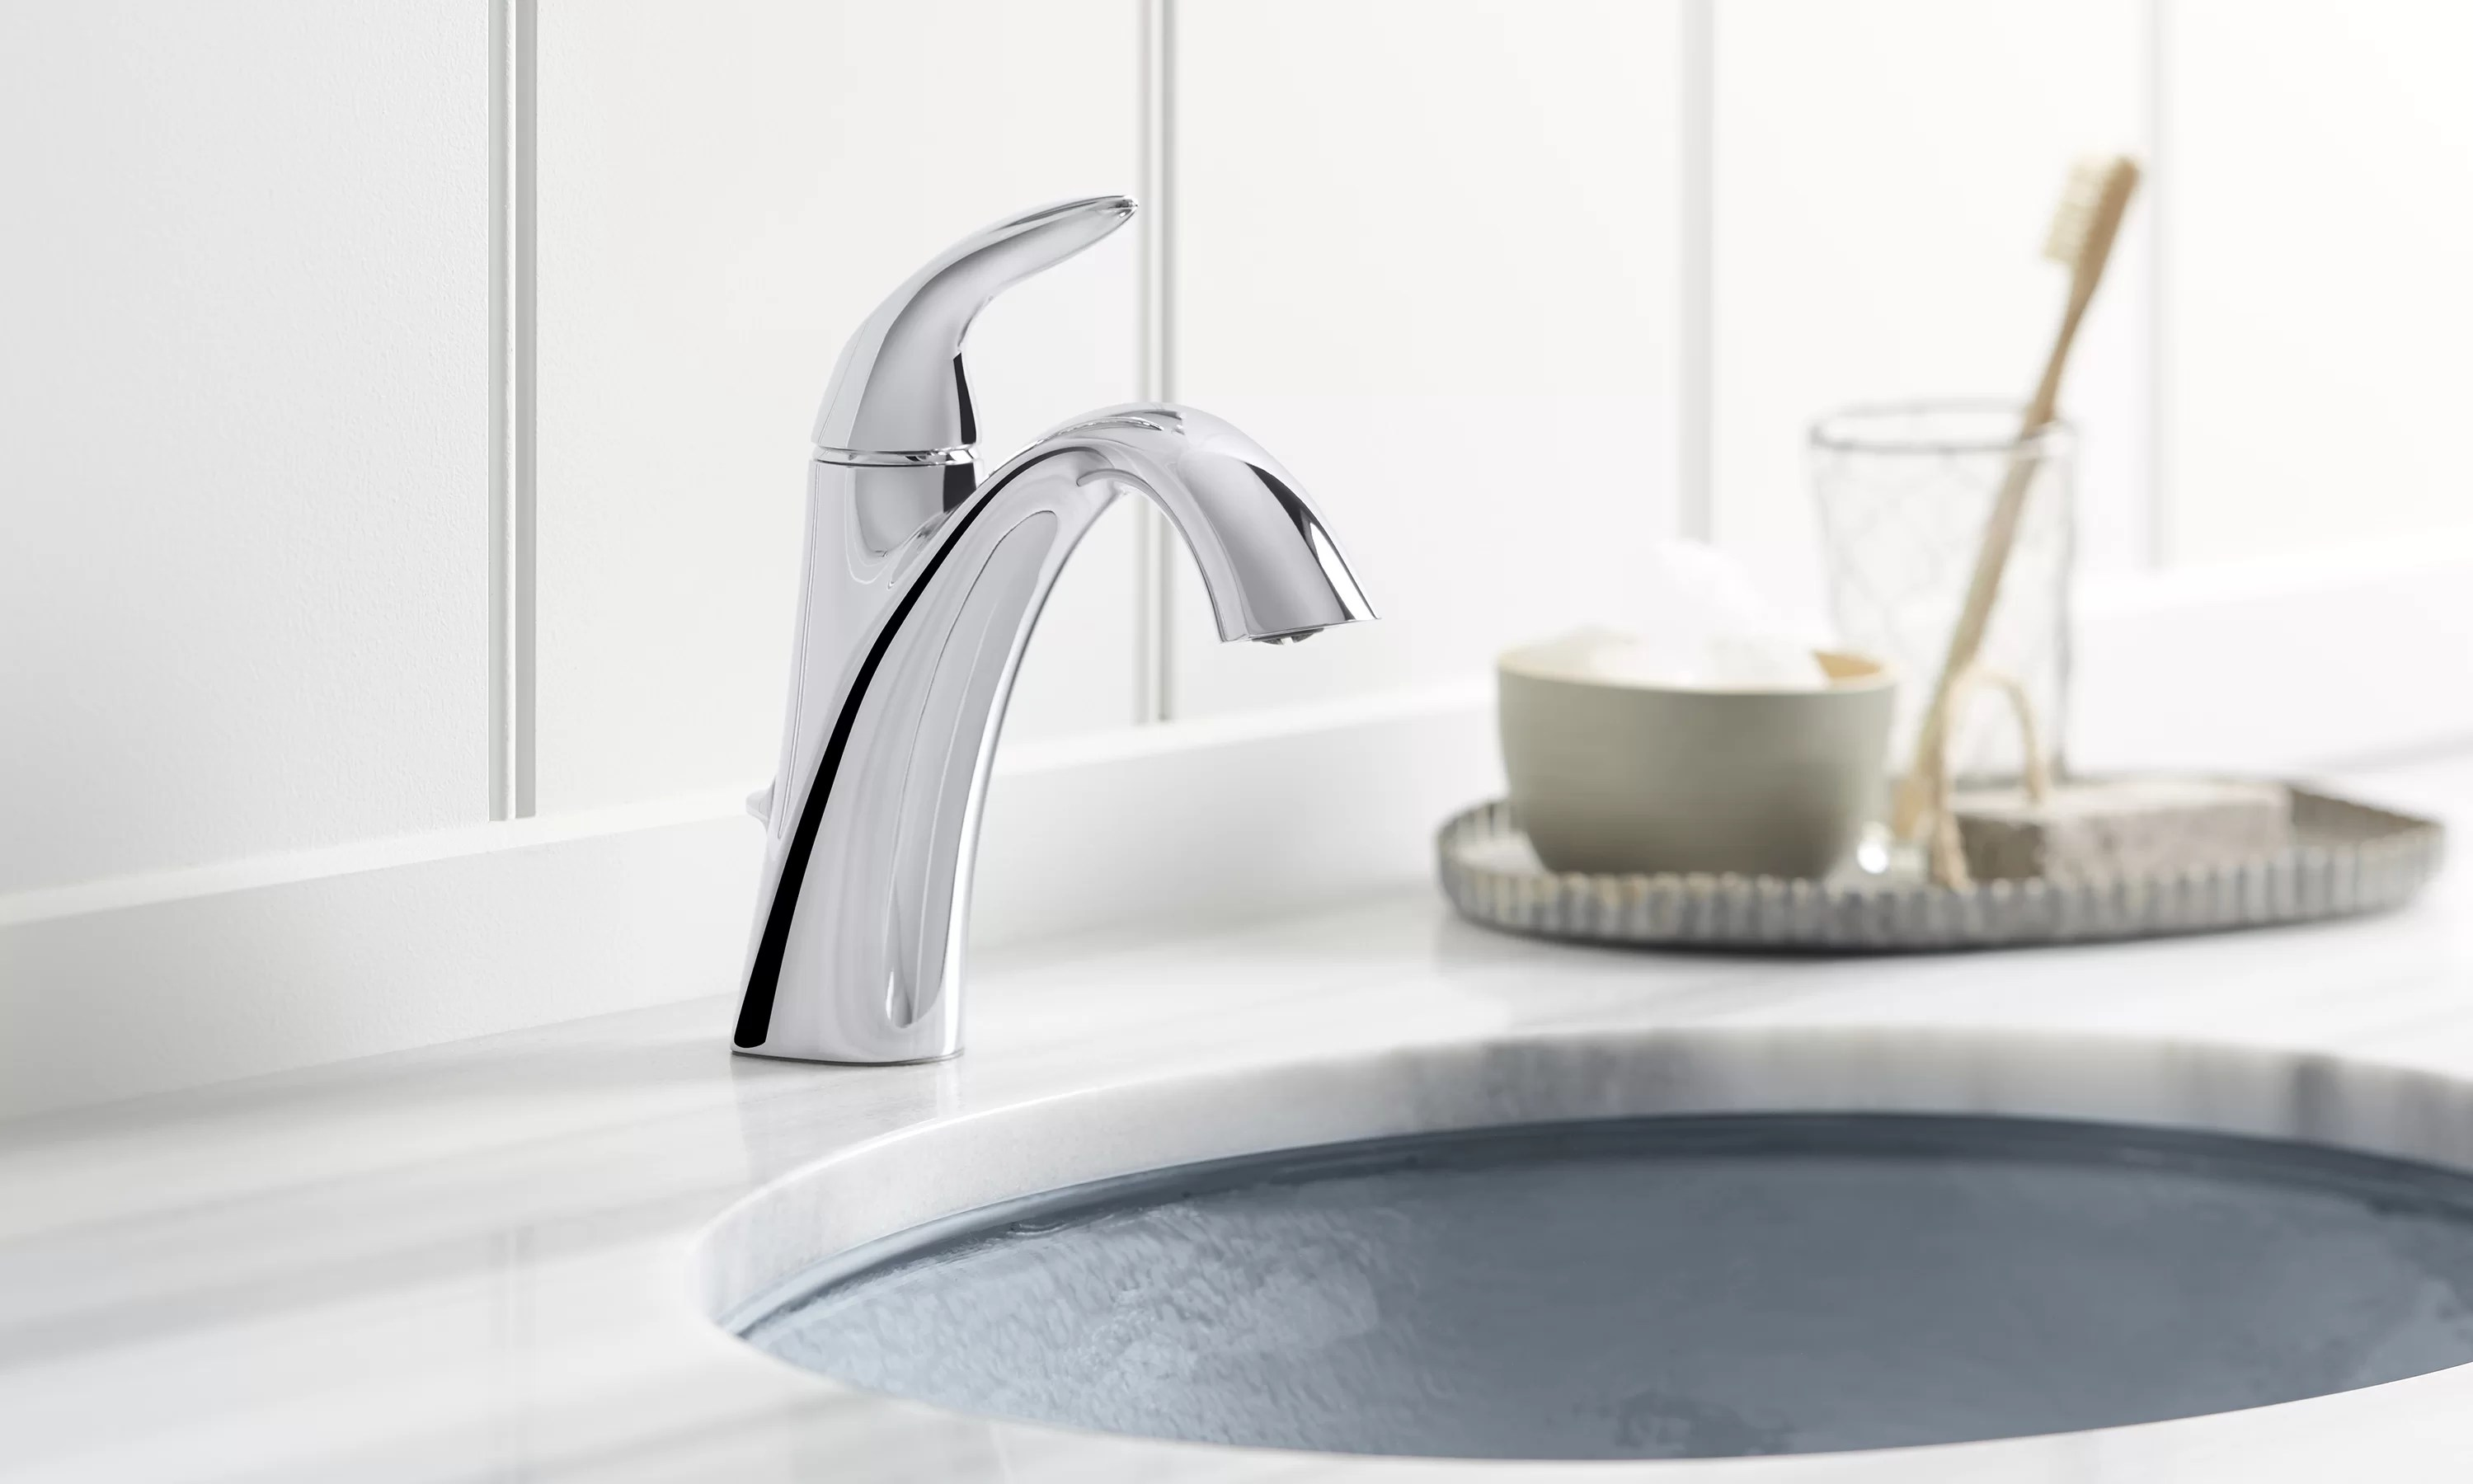 alteo single handle bathroom sink faucet with optional pop up drain assembly